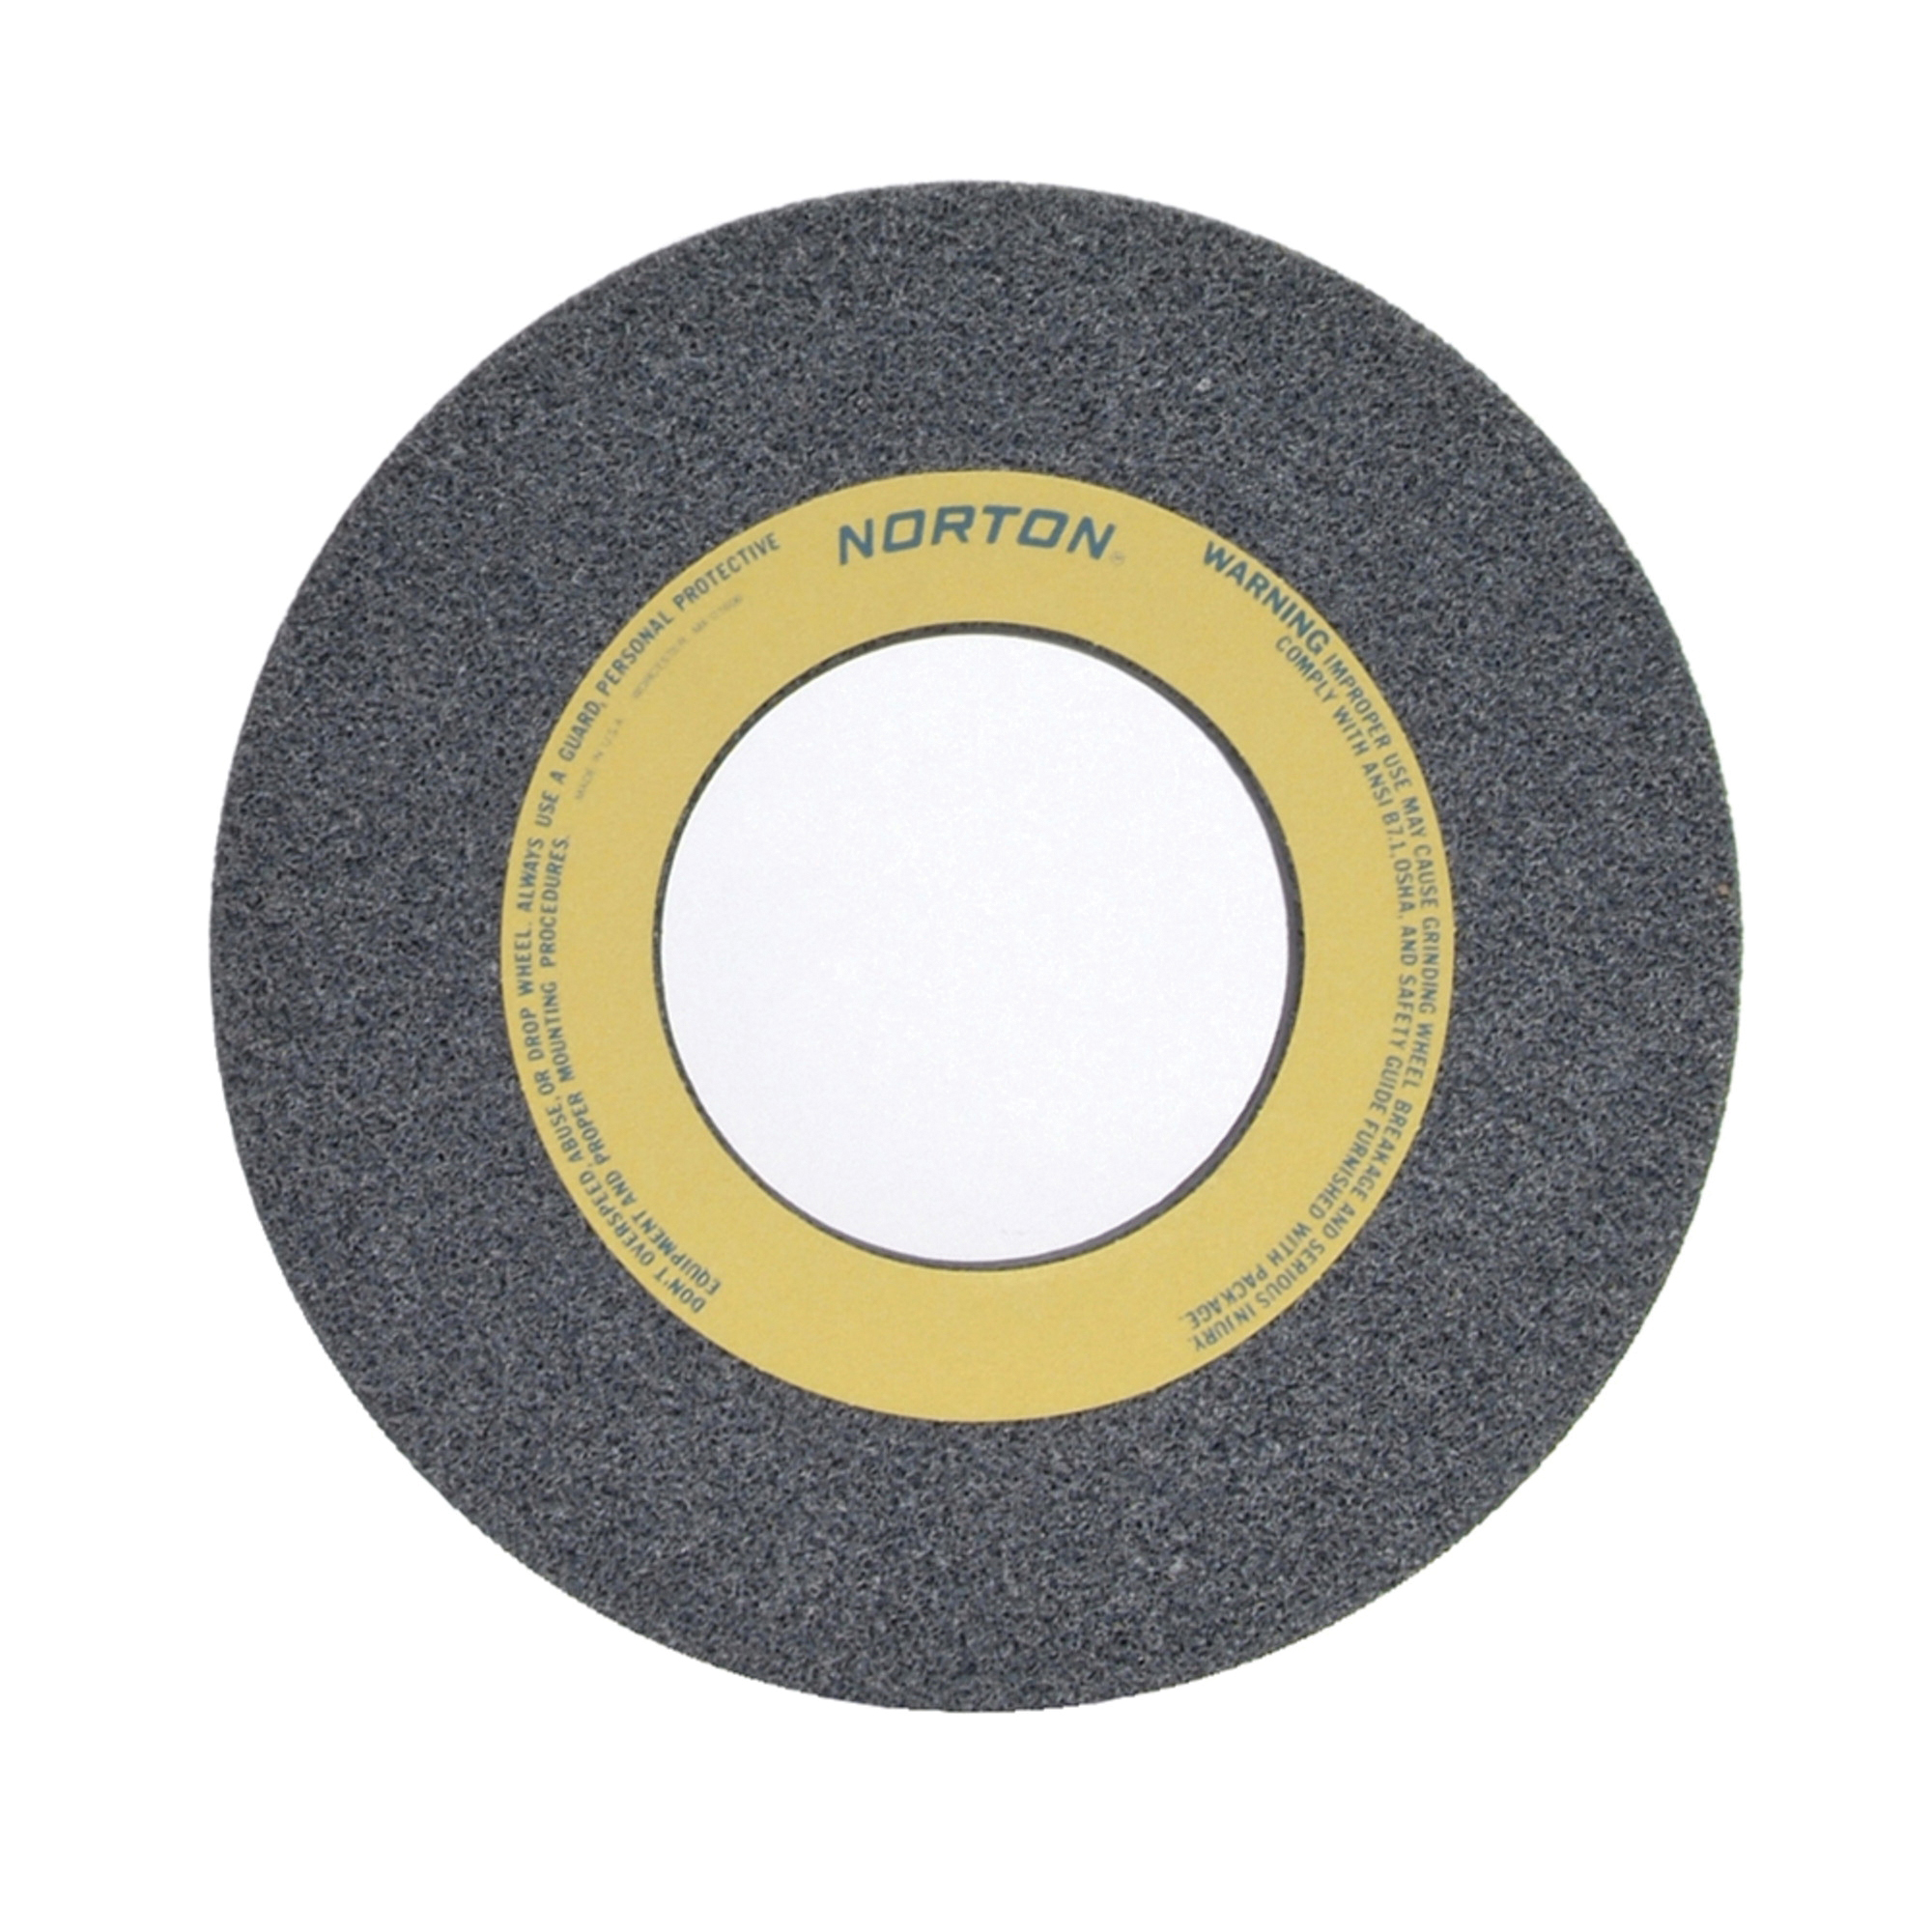 Norton® 66253262302 32A Straight Toolroom Wheel, 12 in Dia x 2 in THK, 5 in Center Hole, 46 Grit, Aluminum Oxide Abrasive